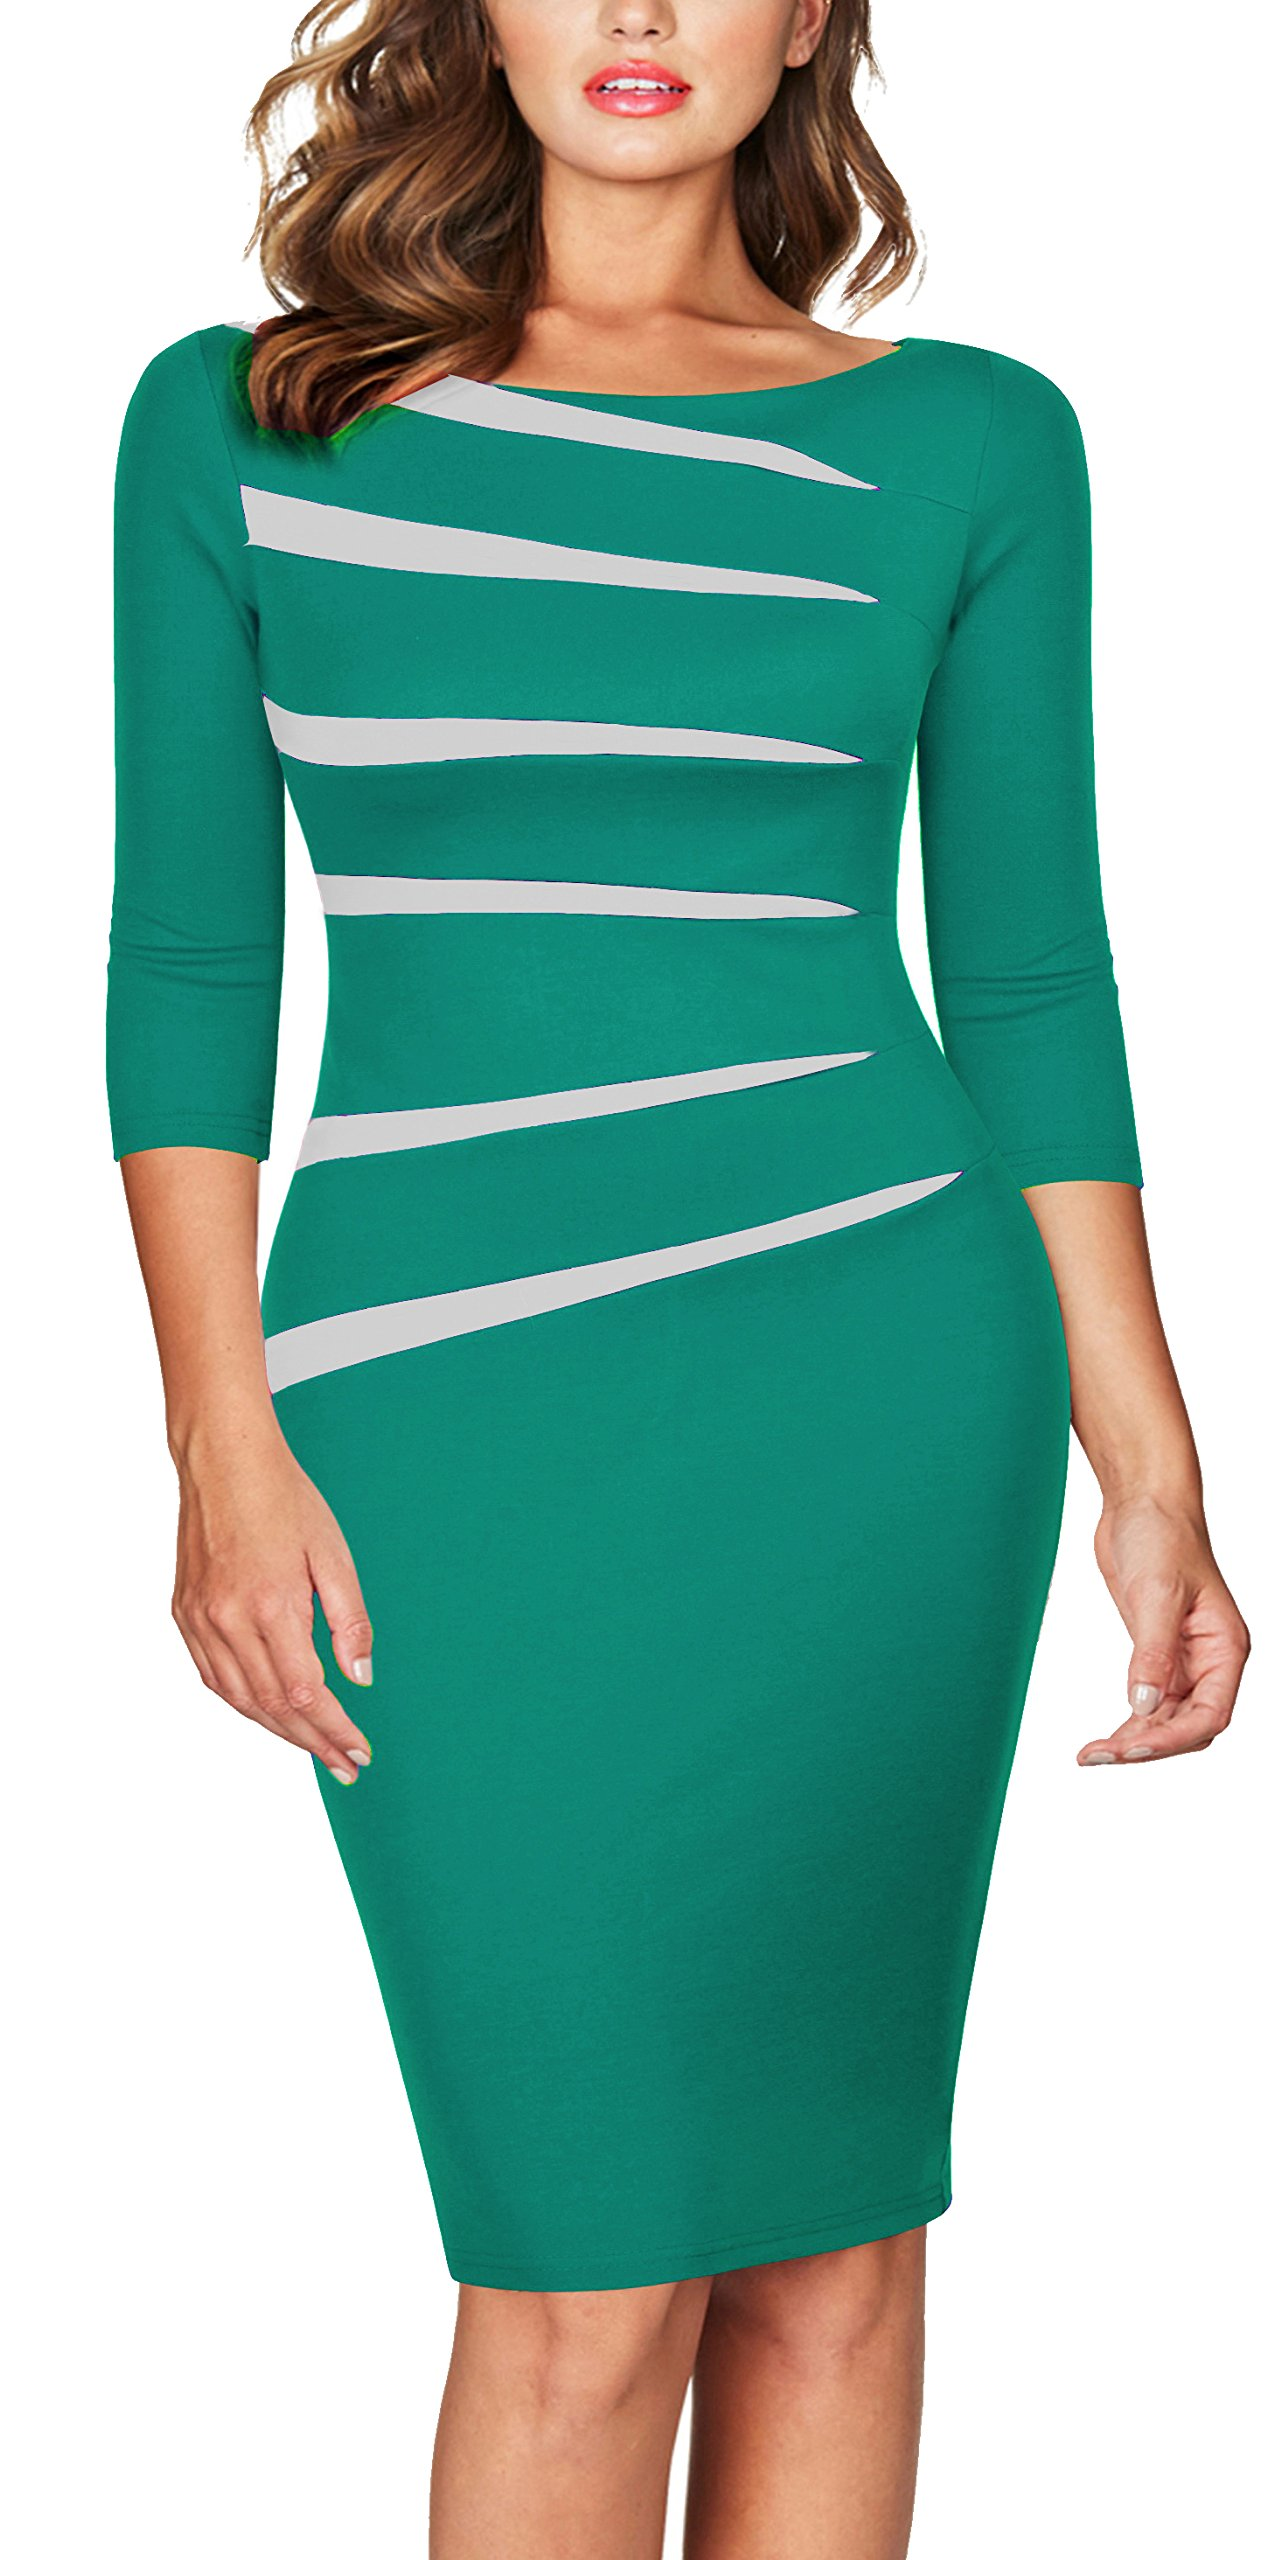 FORTRIC Women 2/3 Sleeve Slim Asymmetric Stitching Bodycon Business Work Pencil Dress Green S